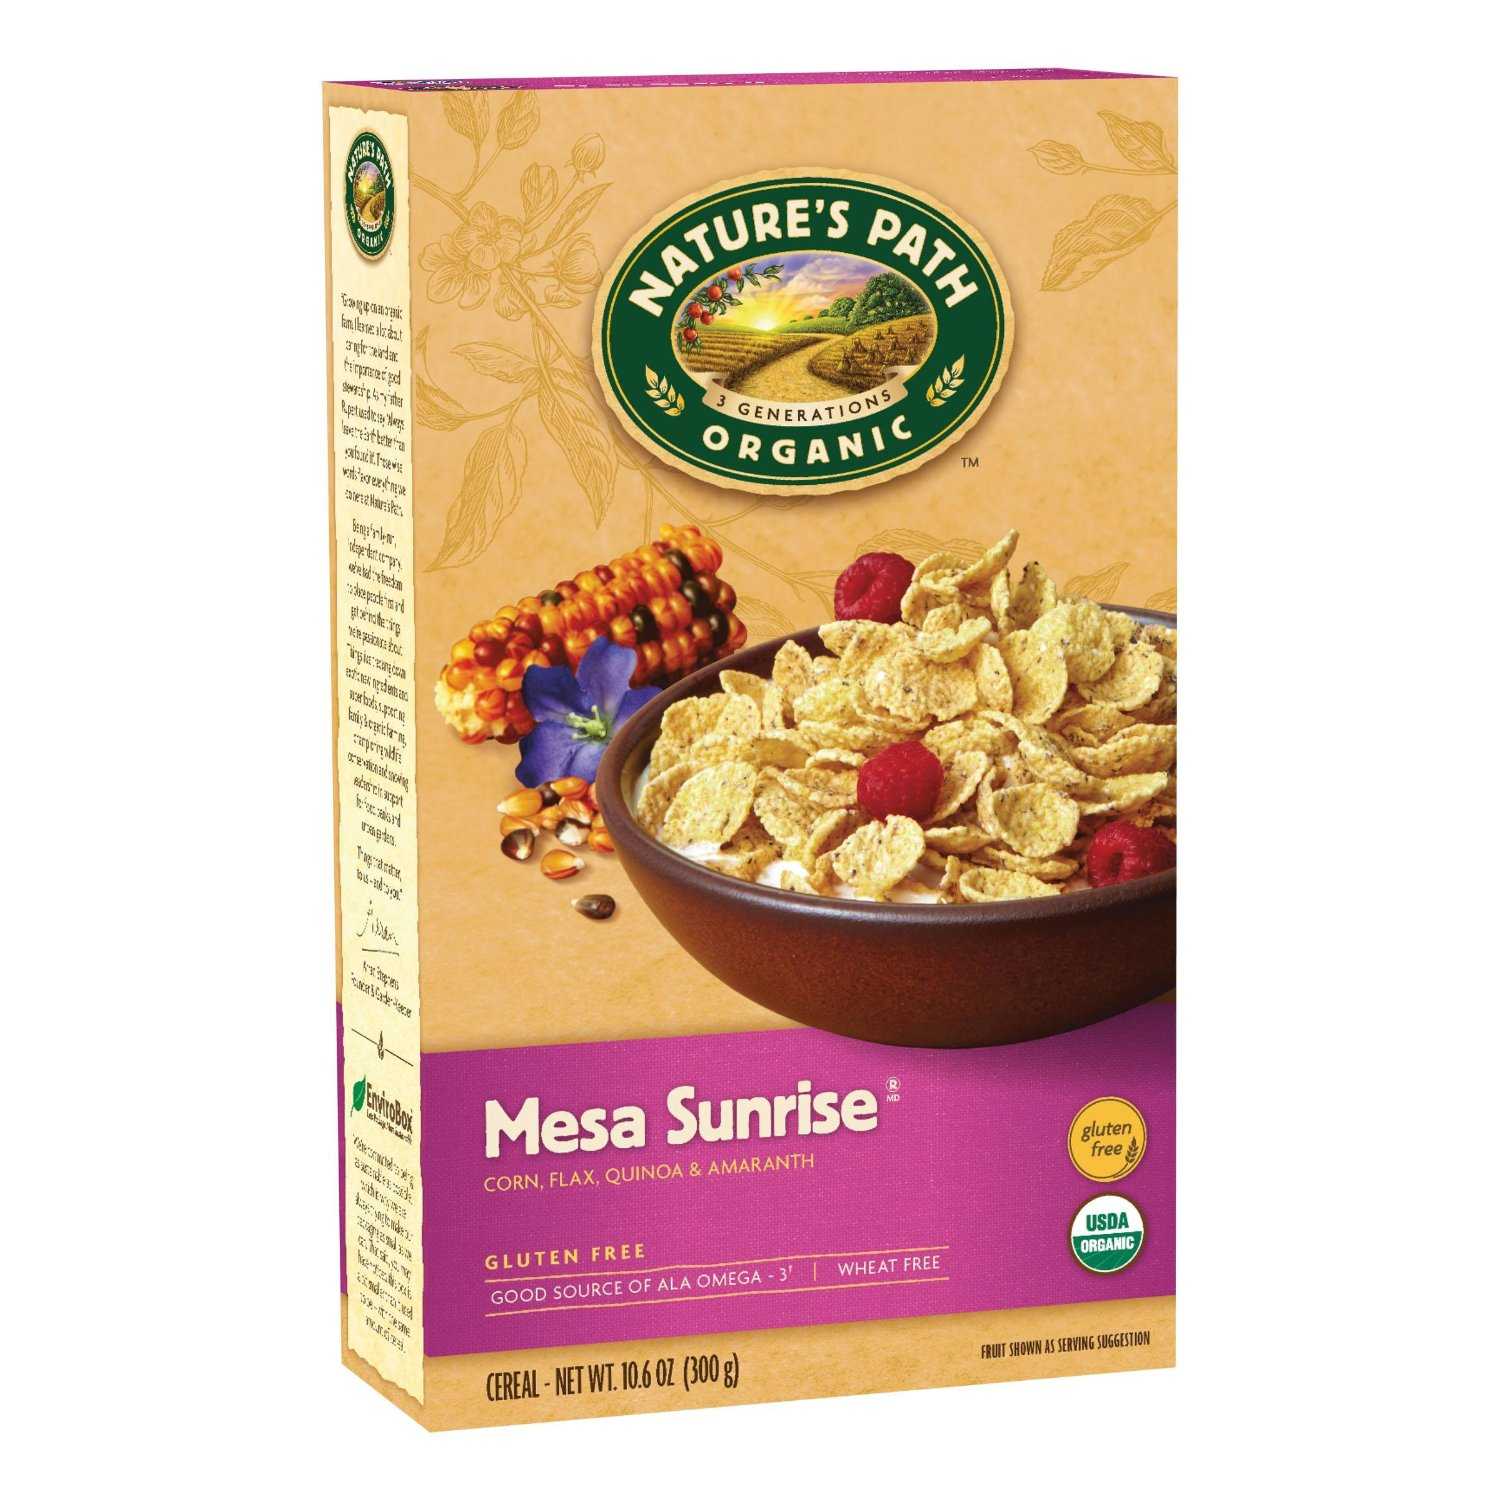 Nature's Path Organic Cereal Deal – $2.27 A Box!